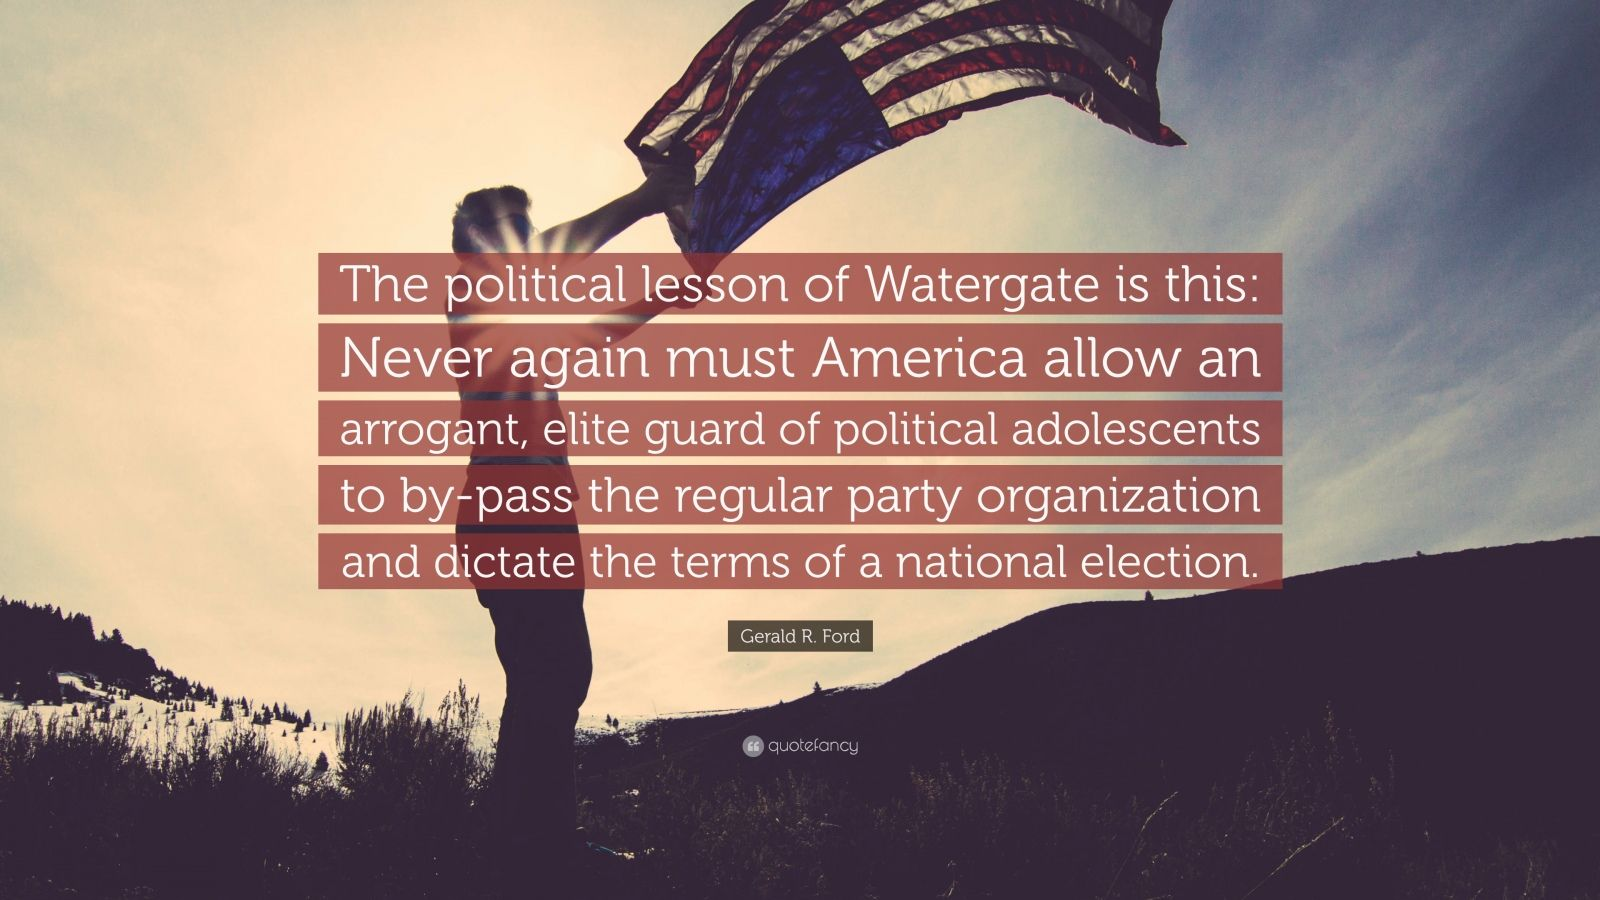 "Gerald R. Ford Quote: ""The political lesson of Watergate is this: Never again must America allow an arrogant, elite guard of political adolescents to by-pass the regular party organization and dictate the terms of a national election."""